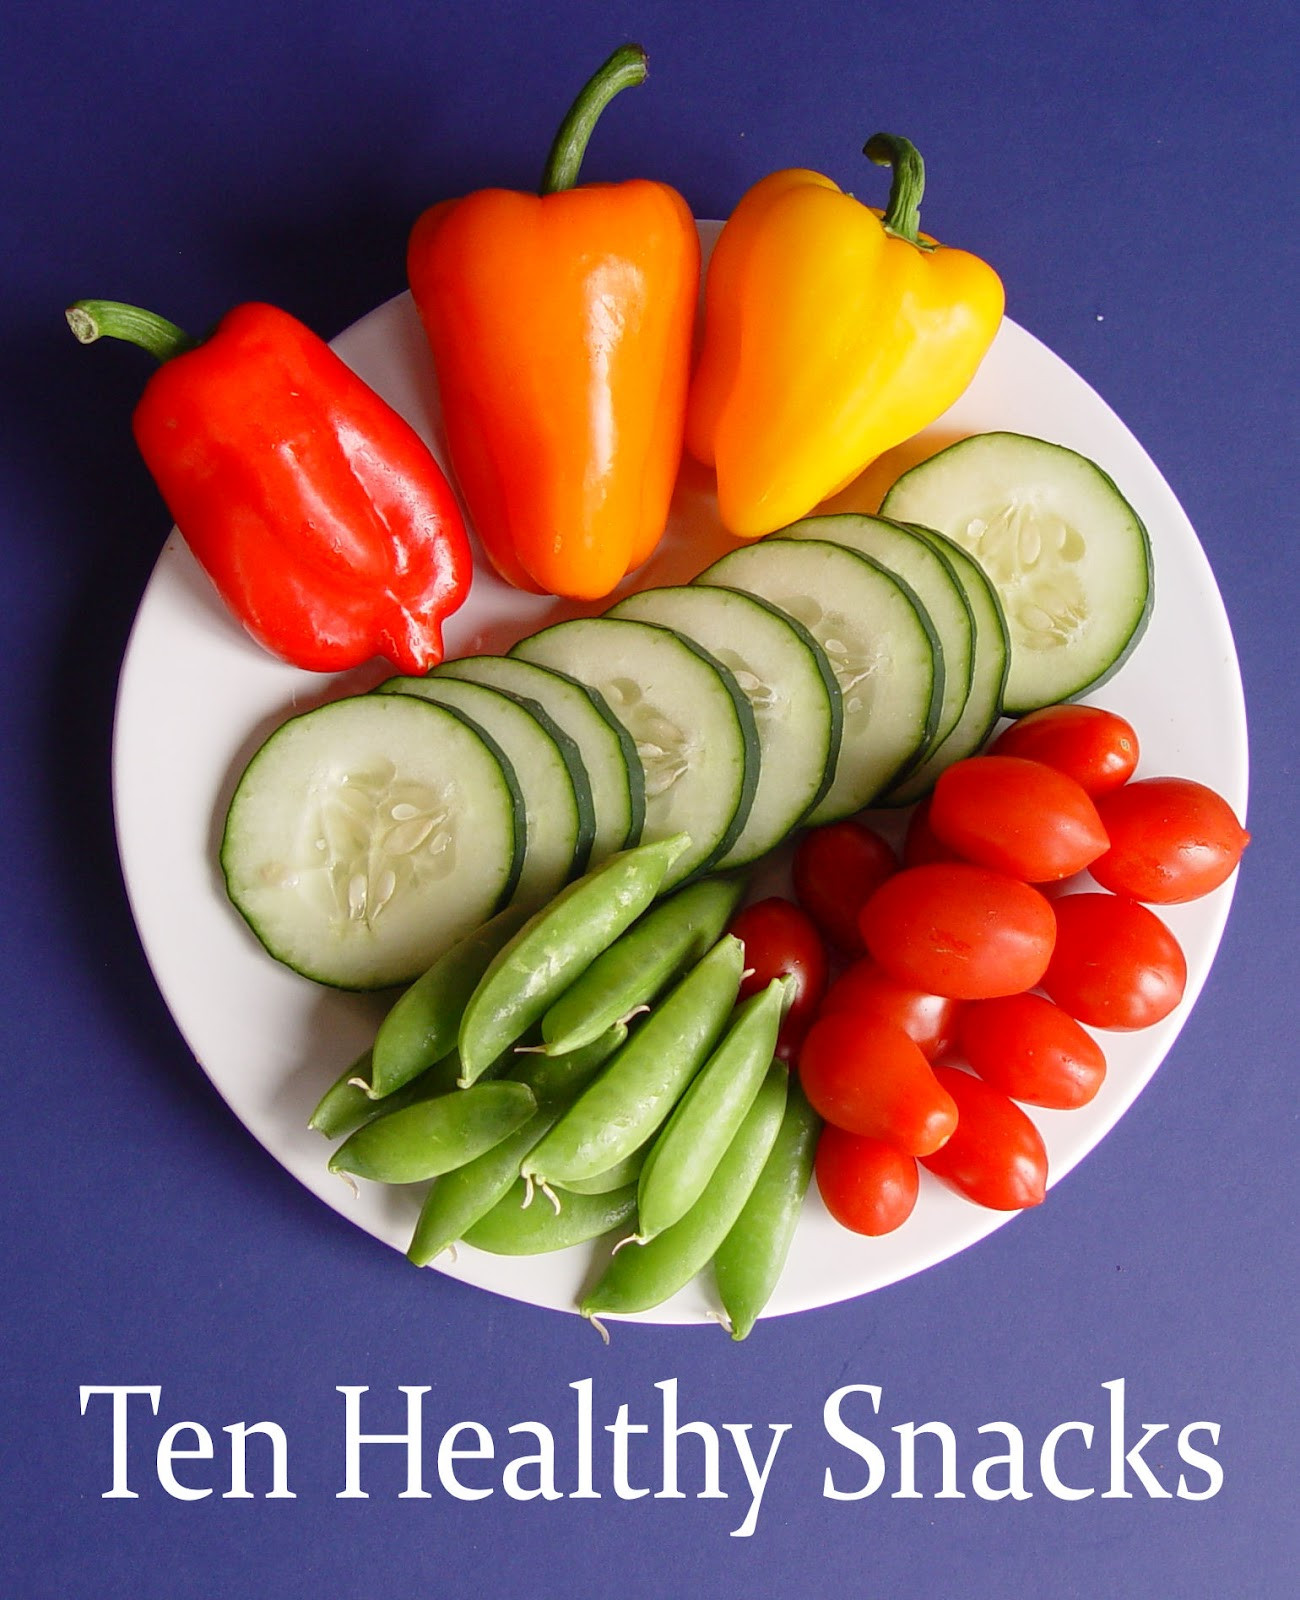 Top 10 Healthy Snacks  Ten Healthy Snacks with Printable Page